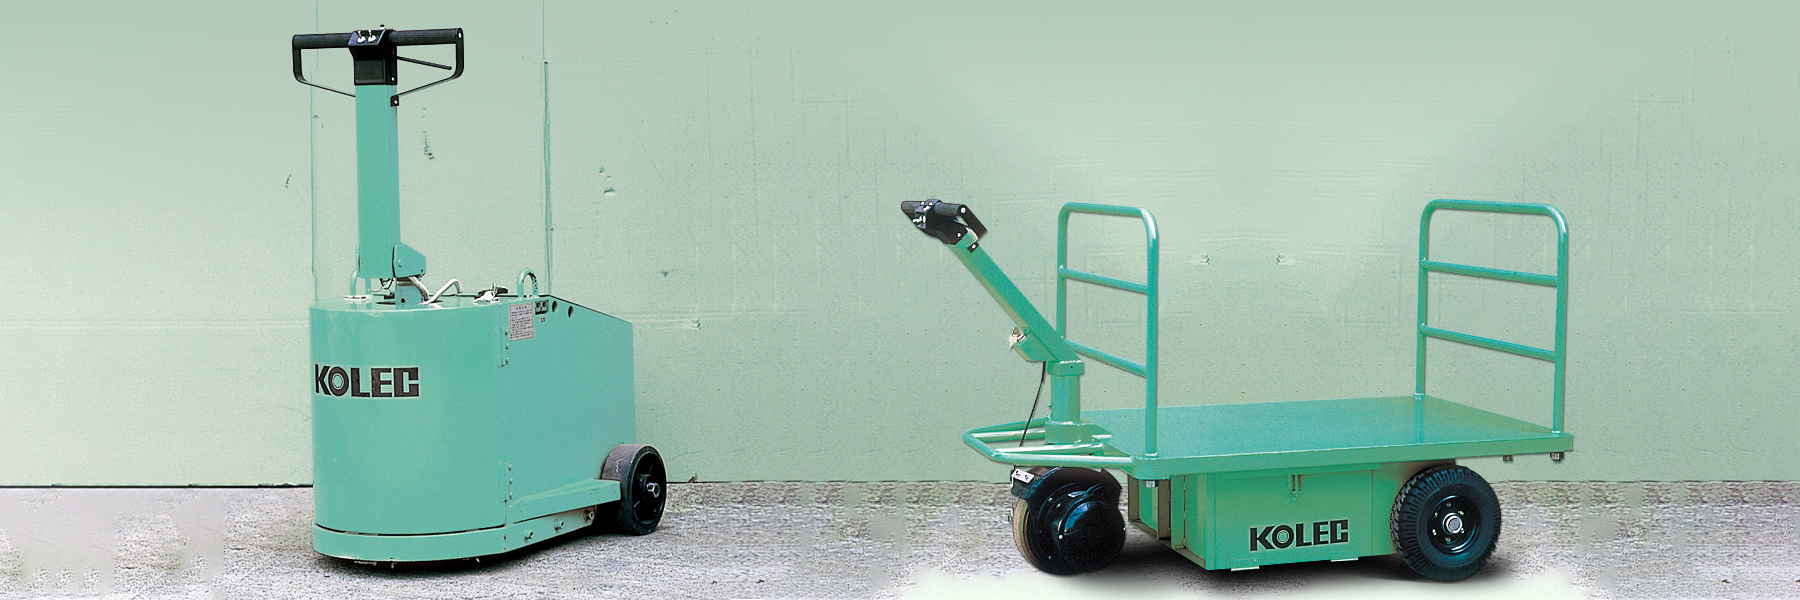 Pedestrian-Controlled Carrier and Towing Tractors